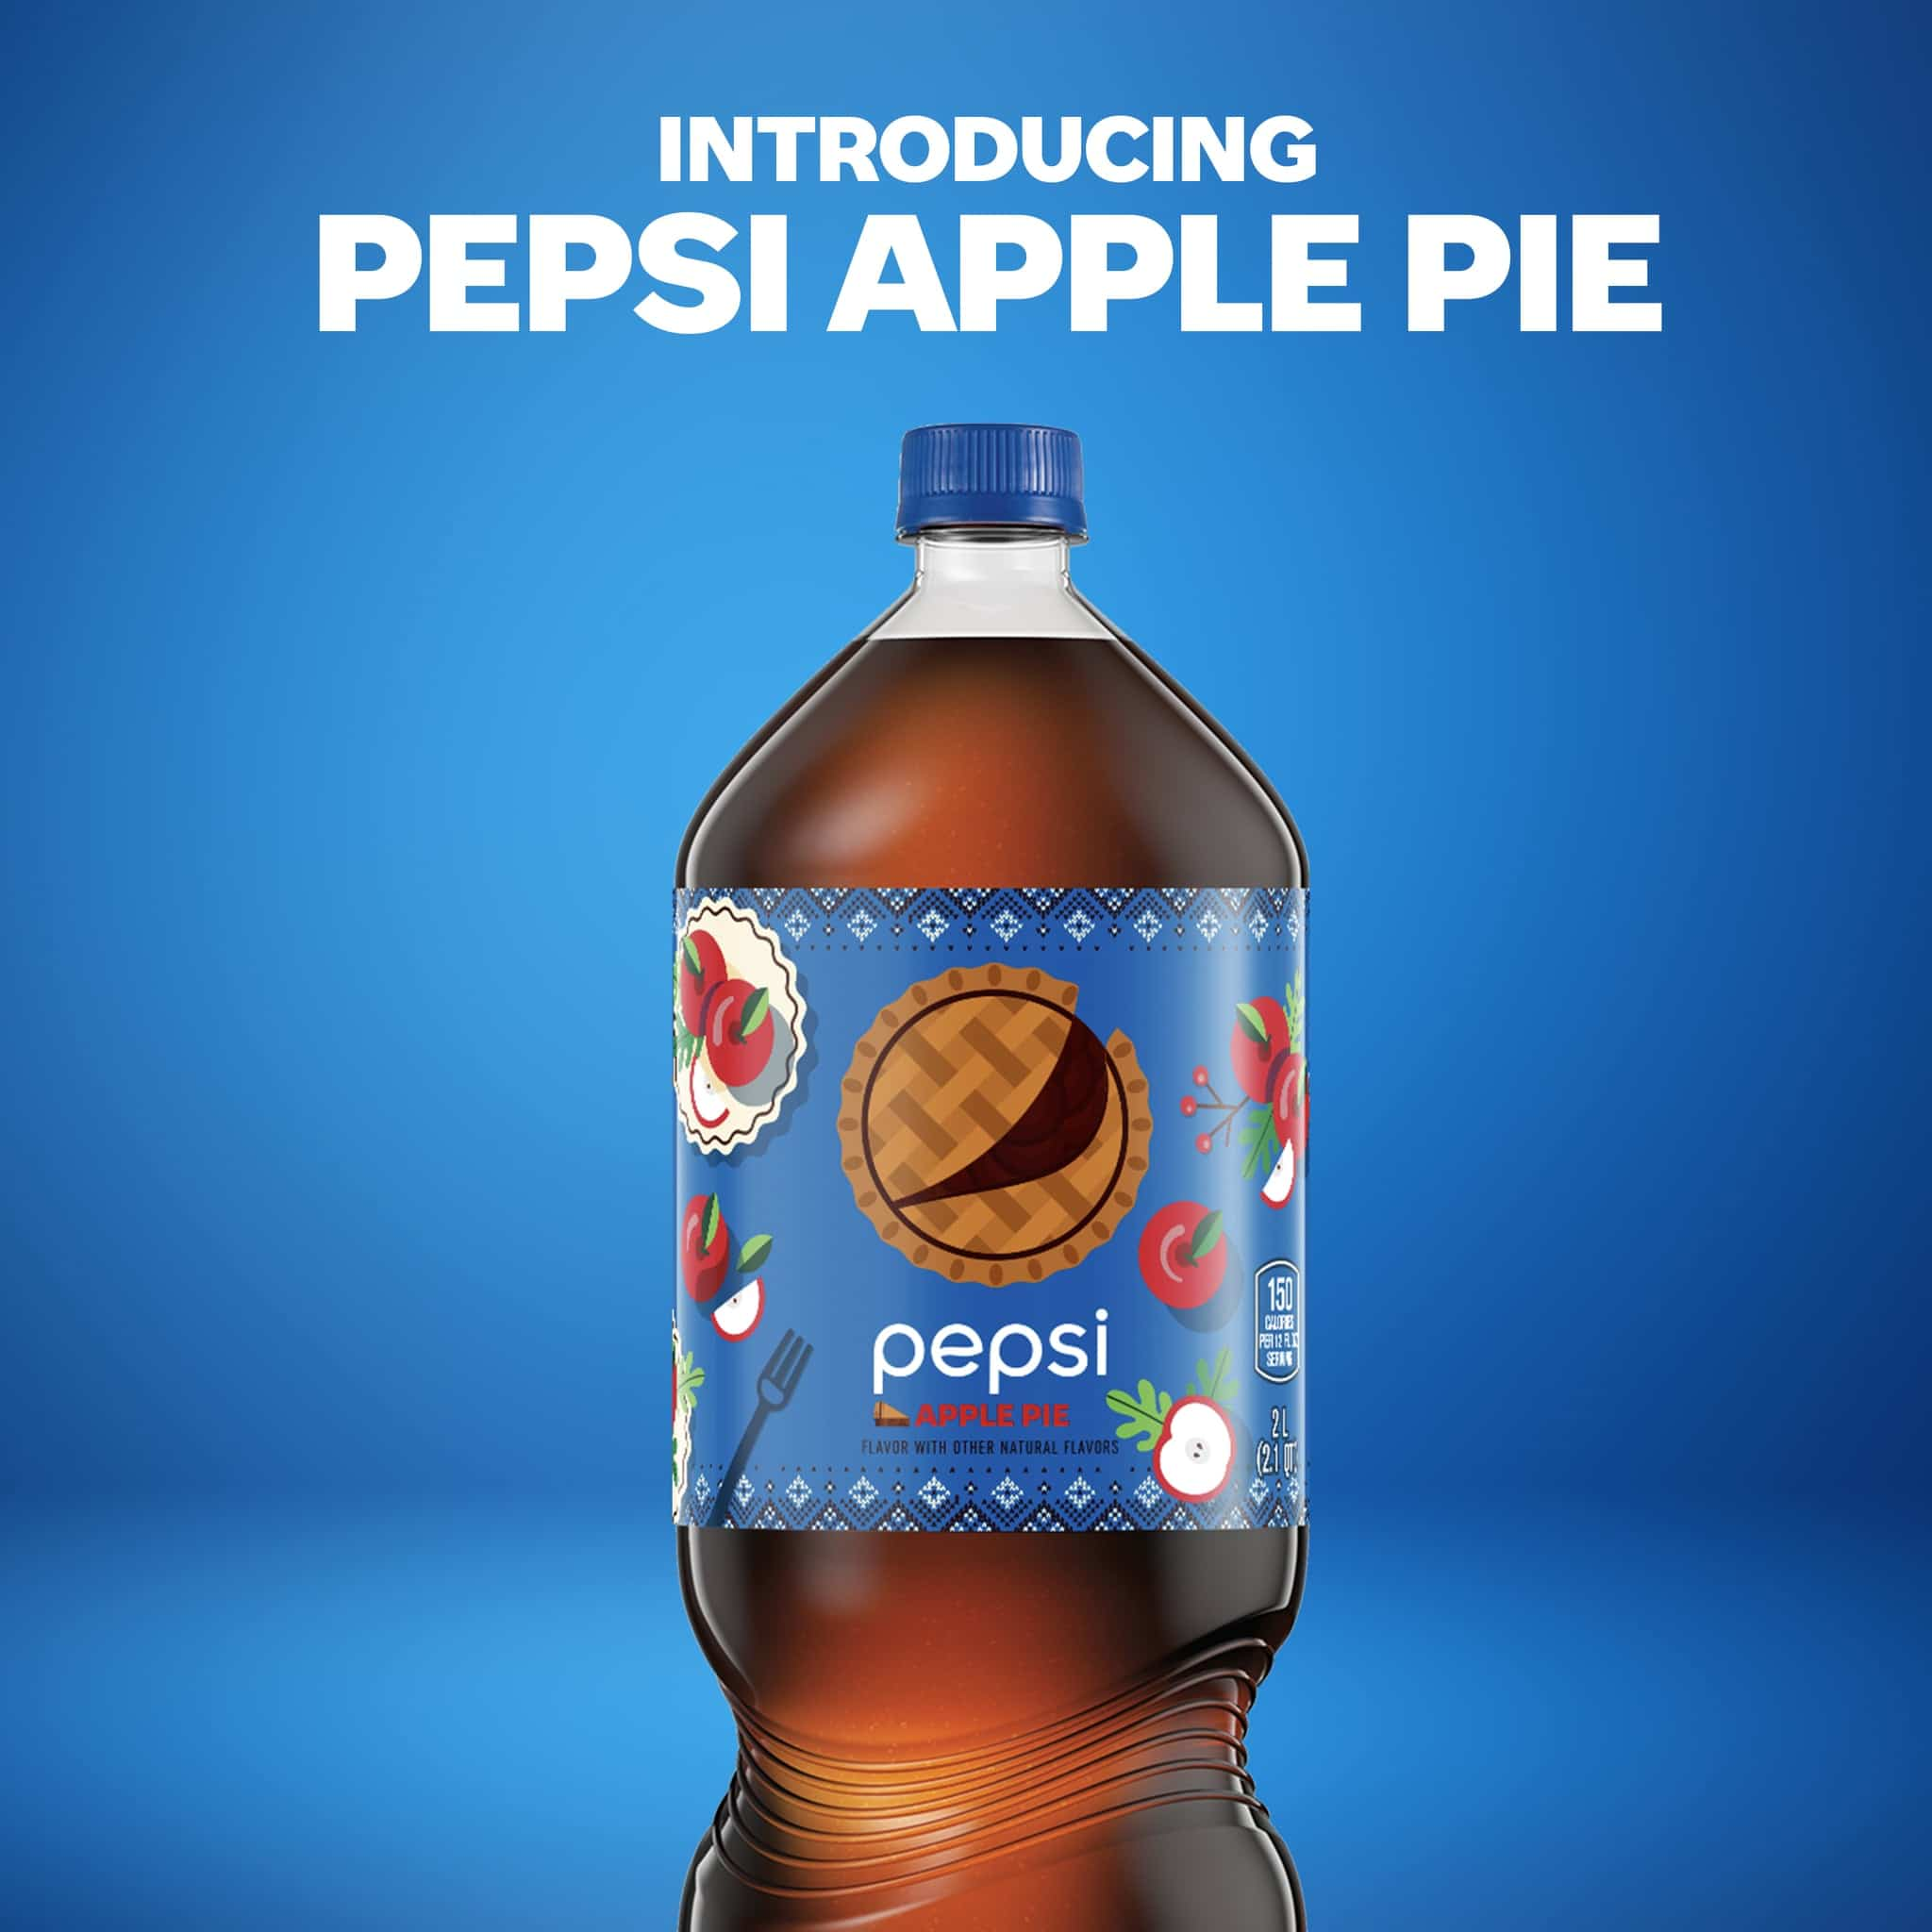 Pepsi 'Cocoa' Cola was launched a month after the introduction of Pepsi Apple Pie